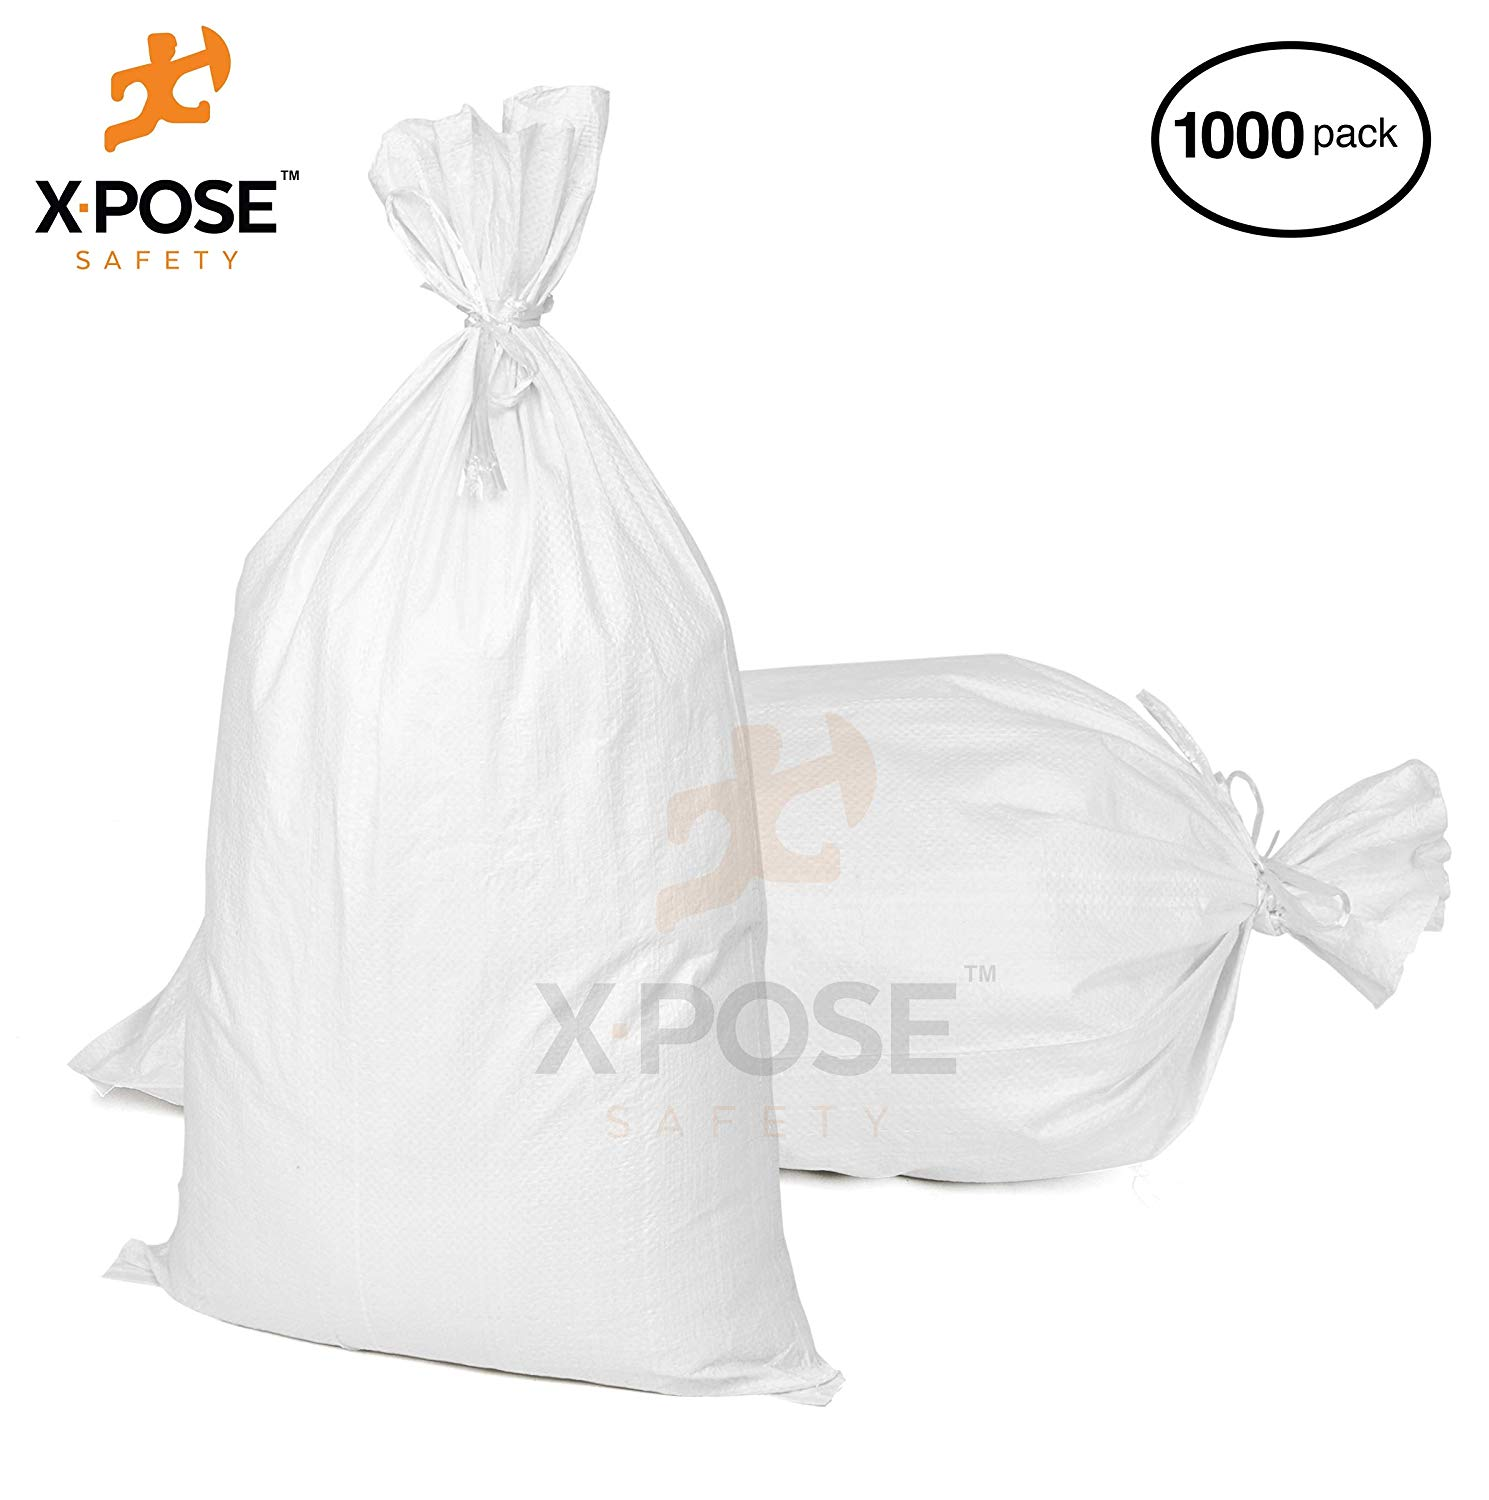 "15"" x27"" Empty Sand Bags, 1,000 PK with Ties  Heavy Duty Woven Polypropylene, UV Sun Protection, Dust, Water and Oil Resistant - Home and Industrial - Floods, Photography and More - by Xpose Safety WSB-1527-1000"